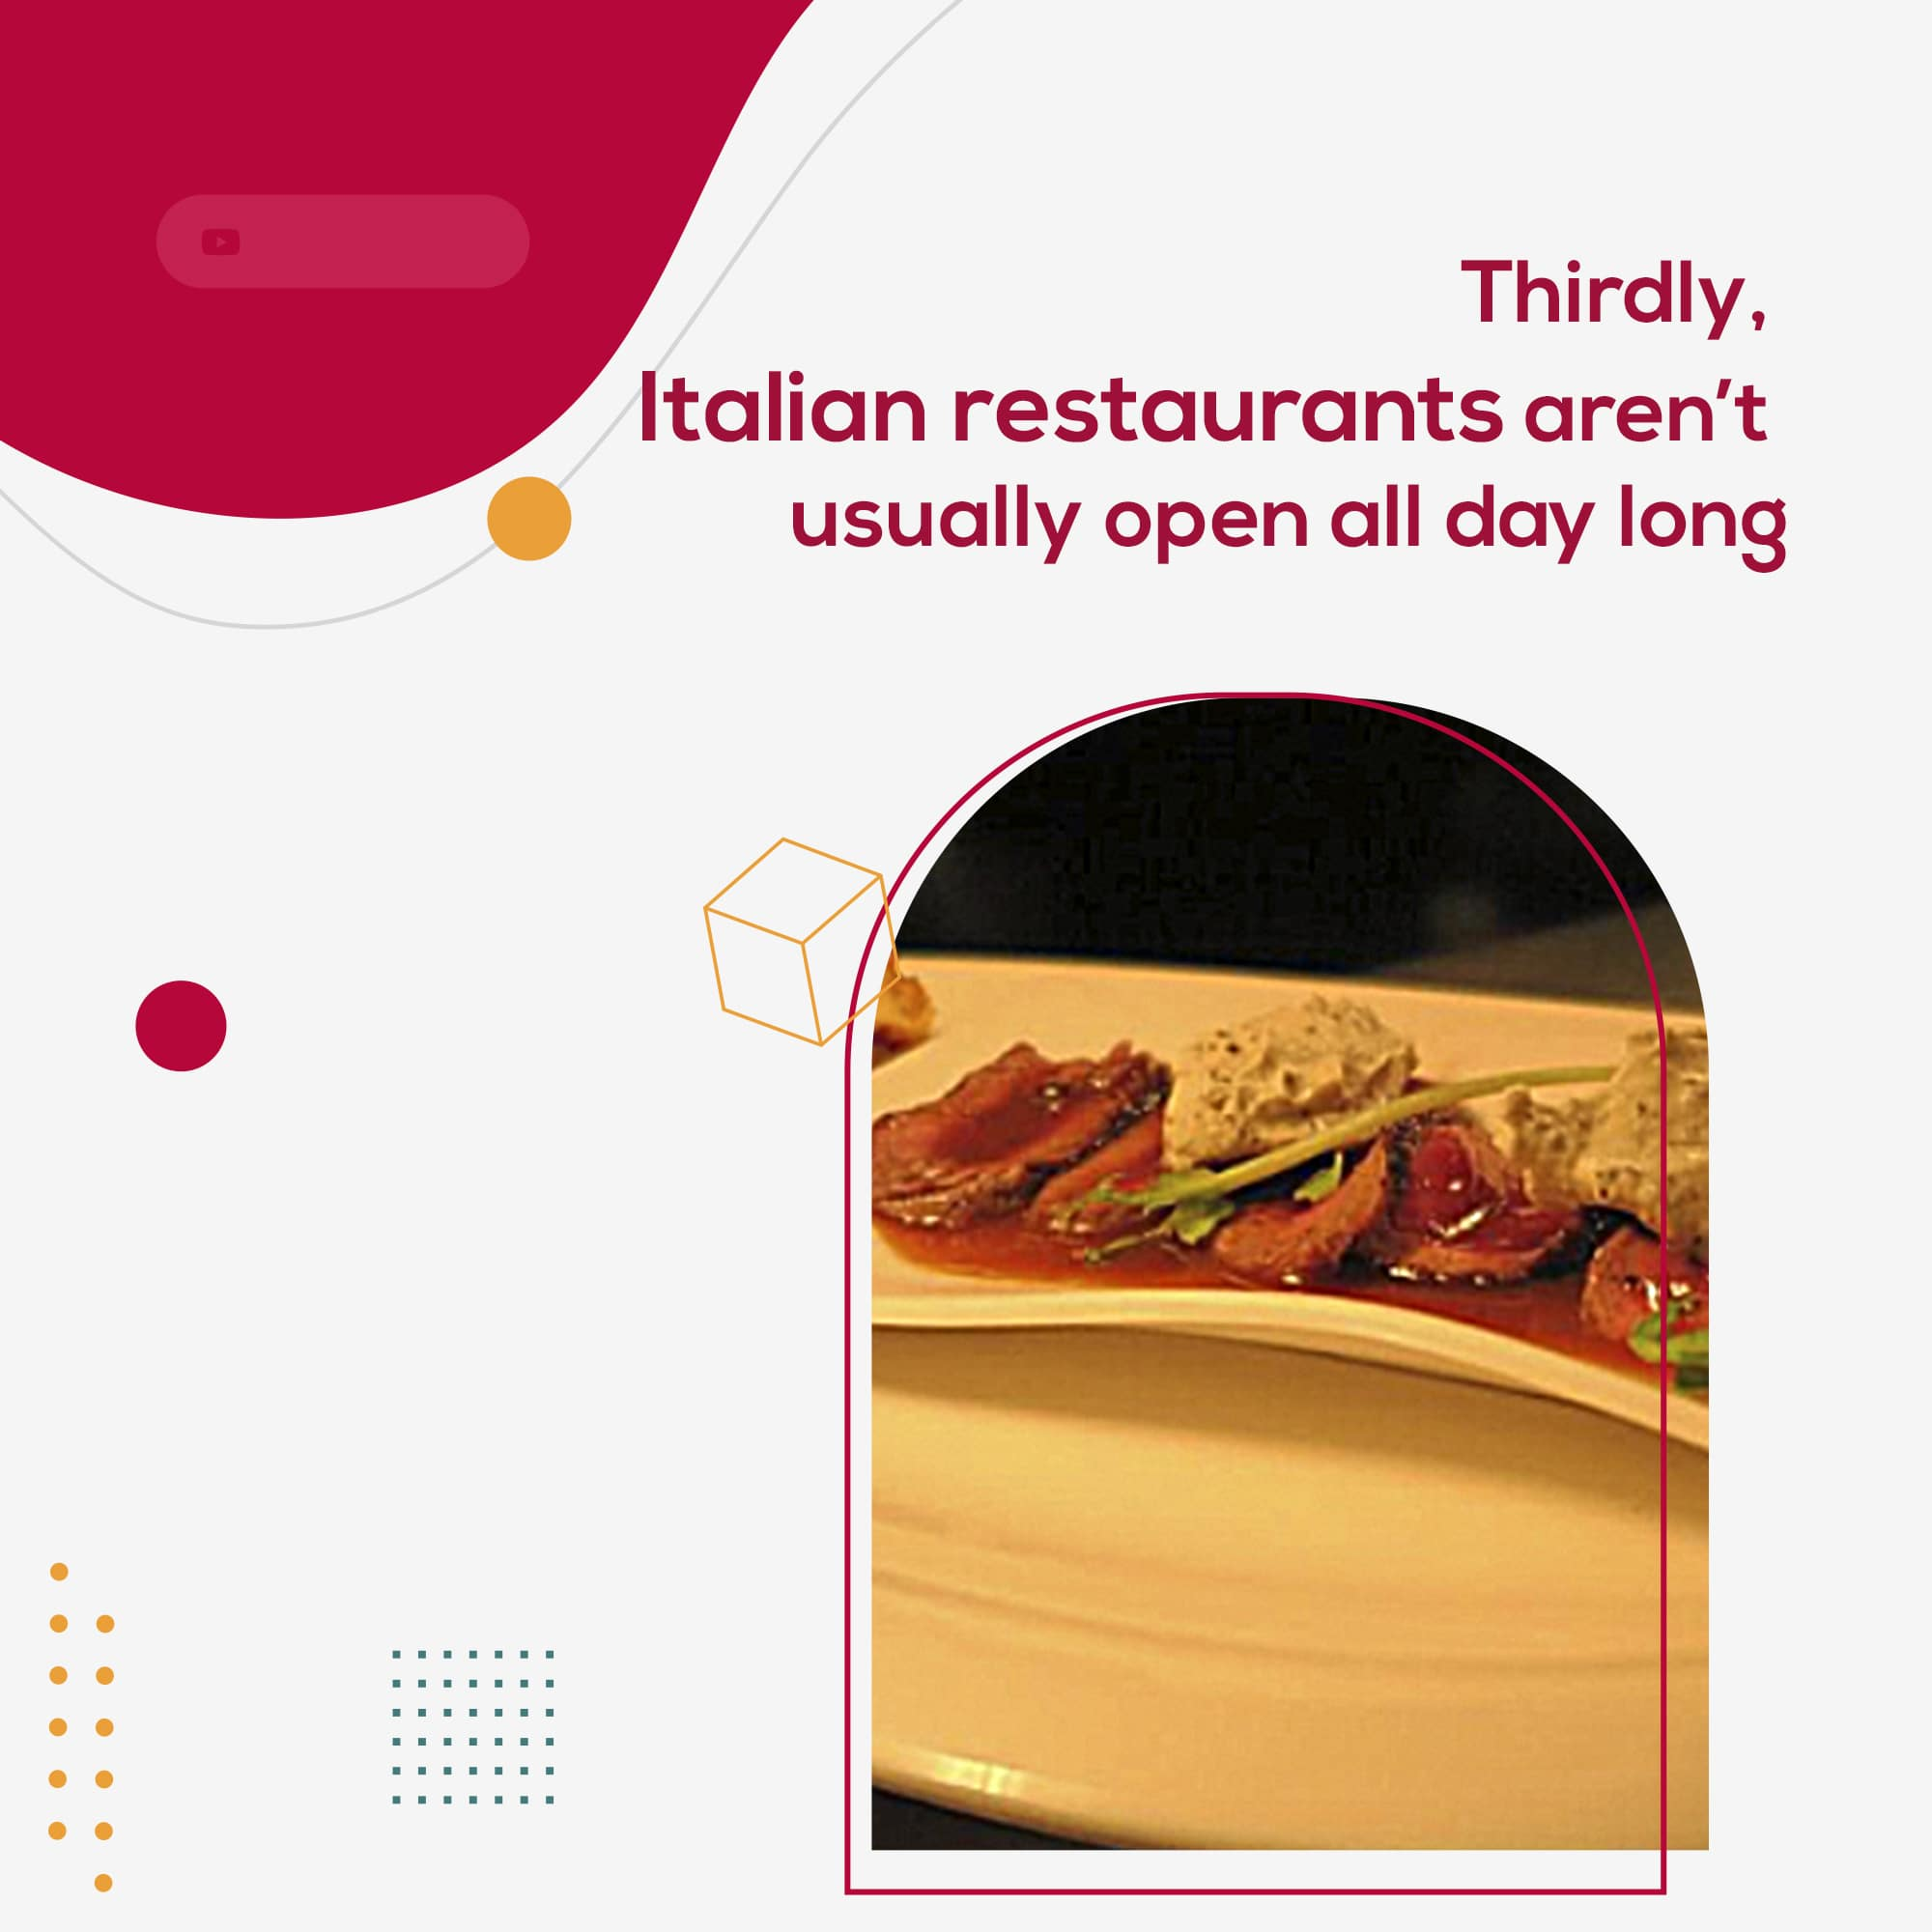 Thirdly, Italian restaurants aren't usually open all day long